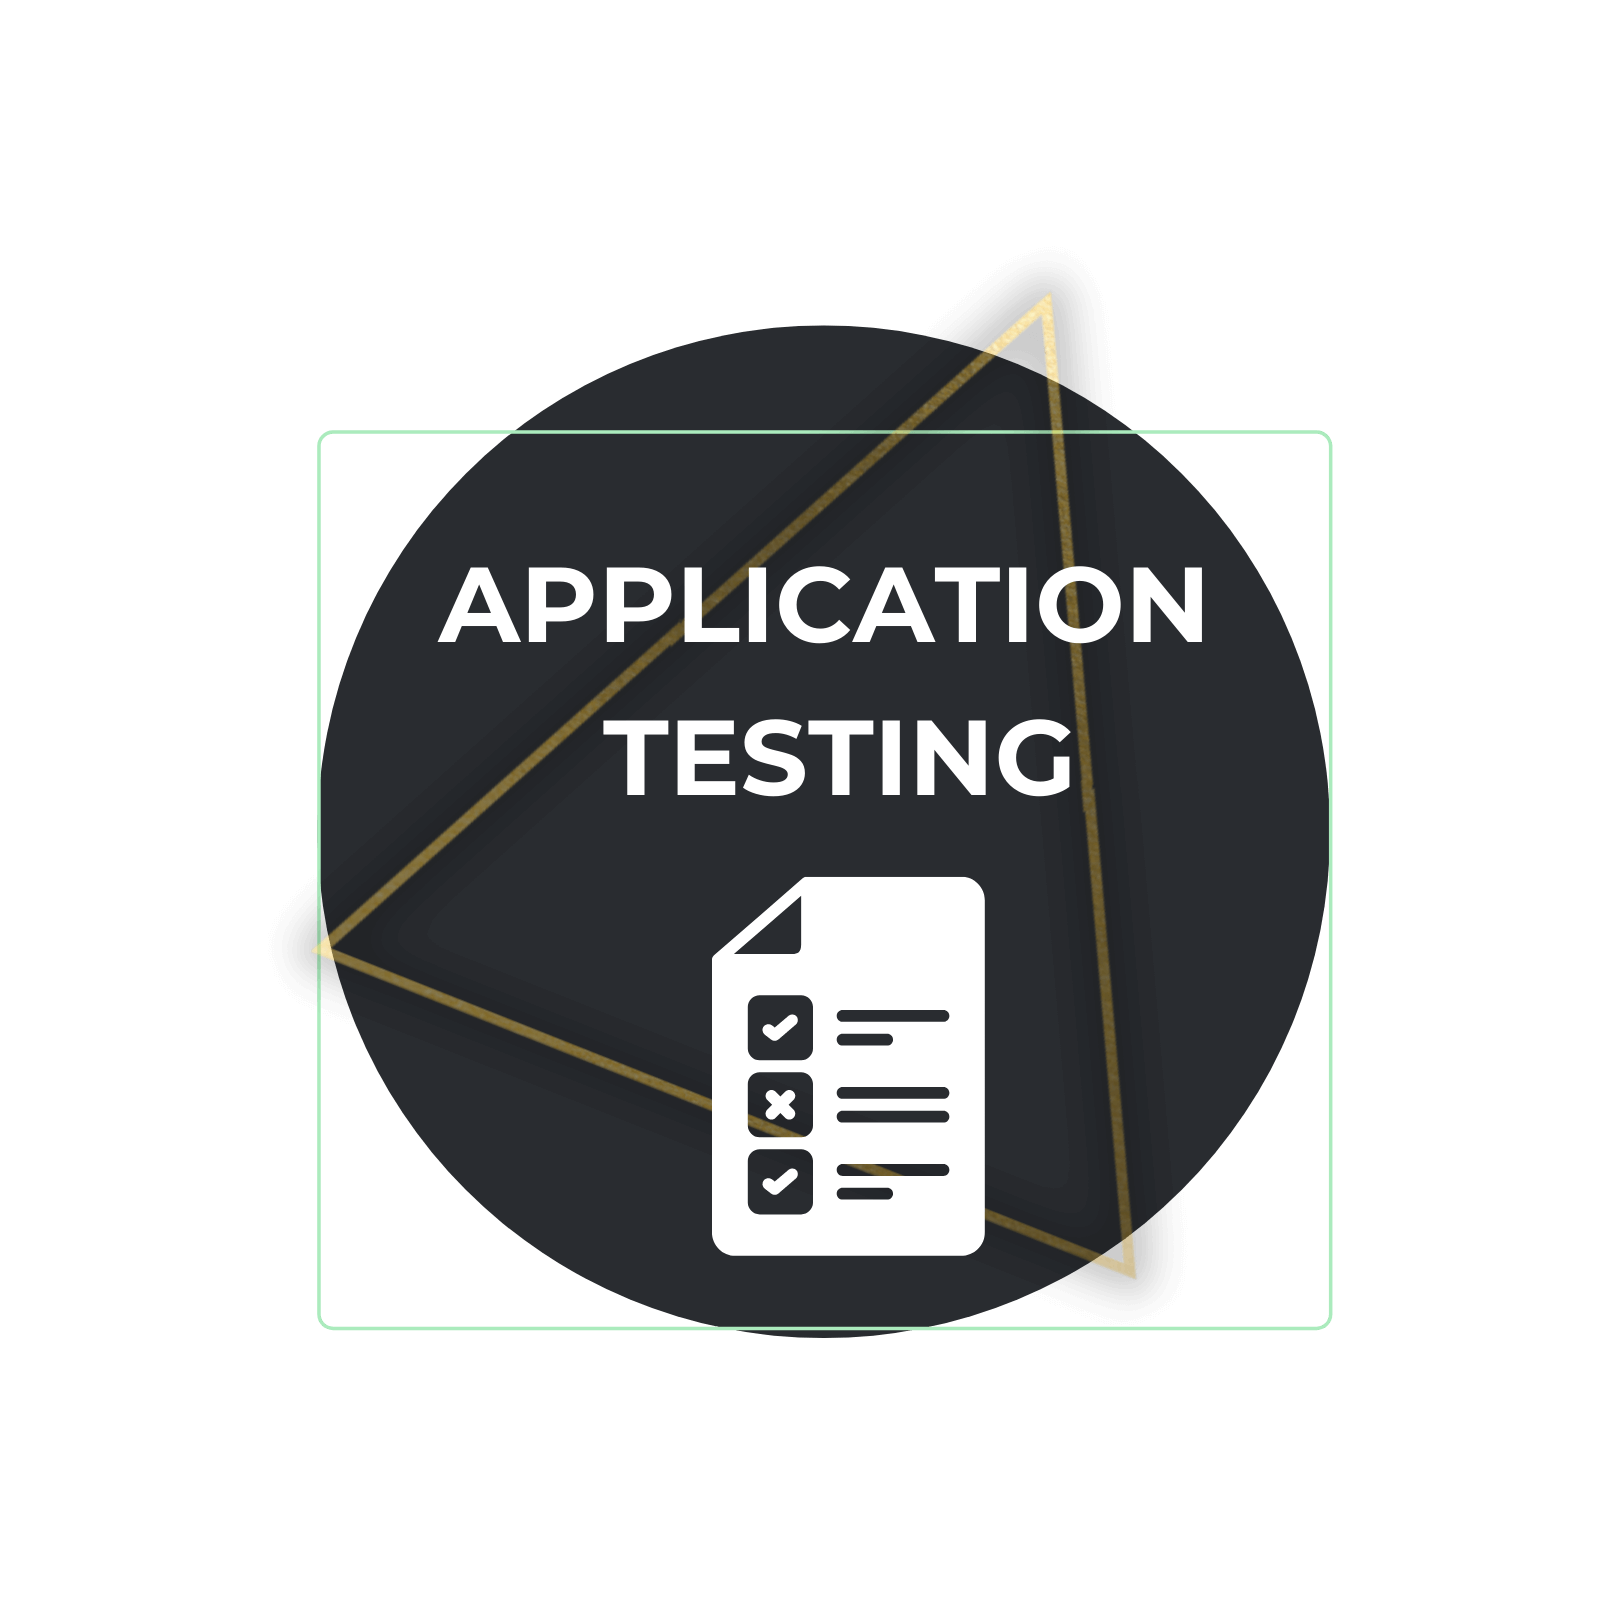 Application Testing, Agile Business Concepts